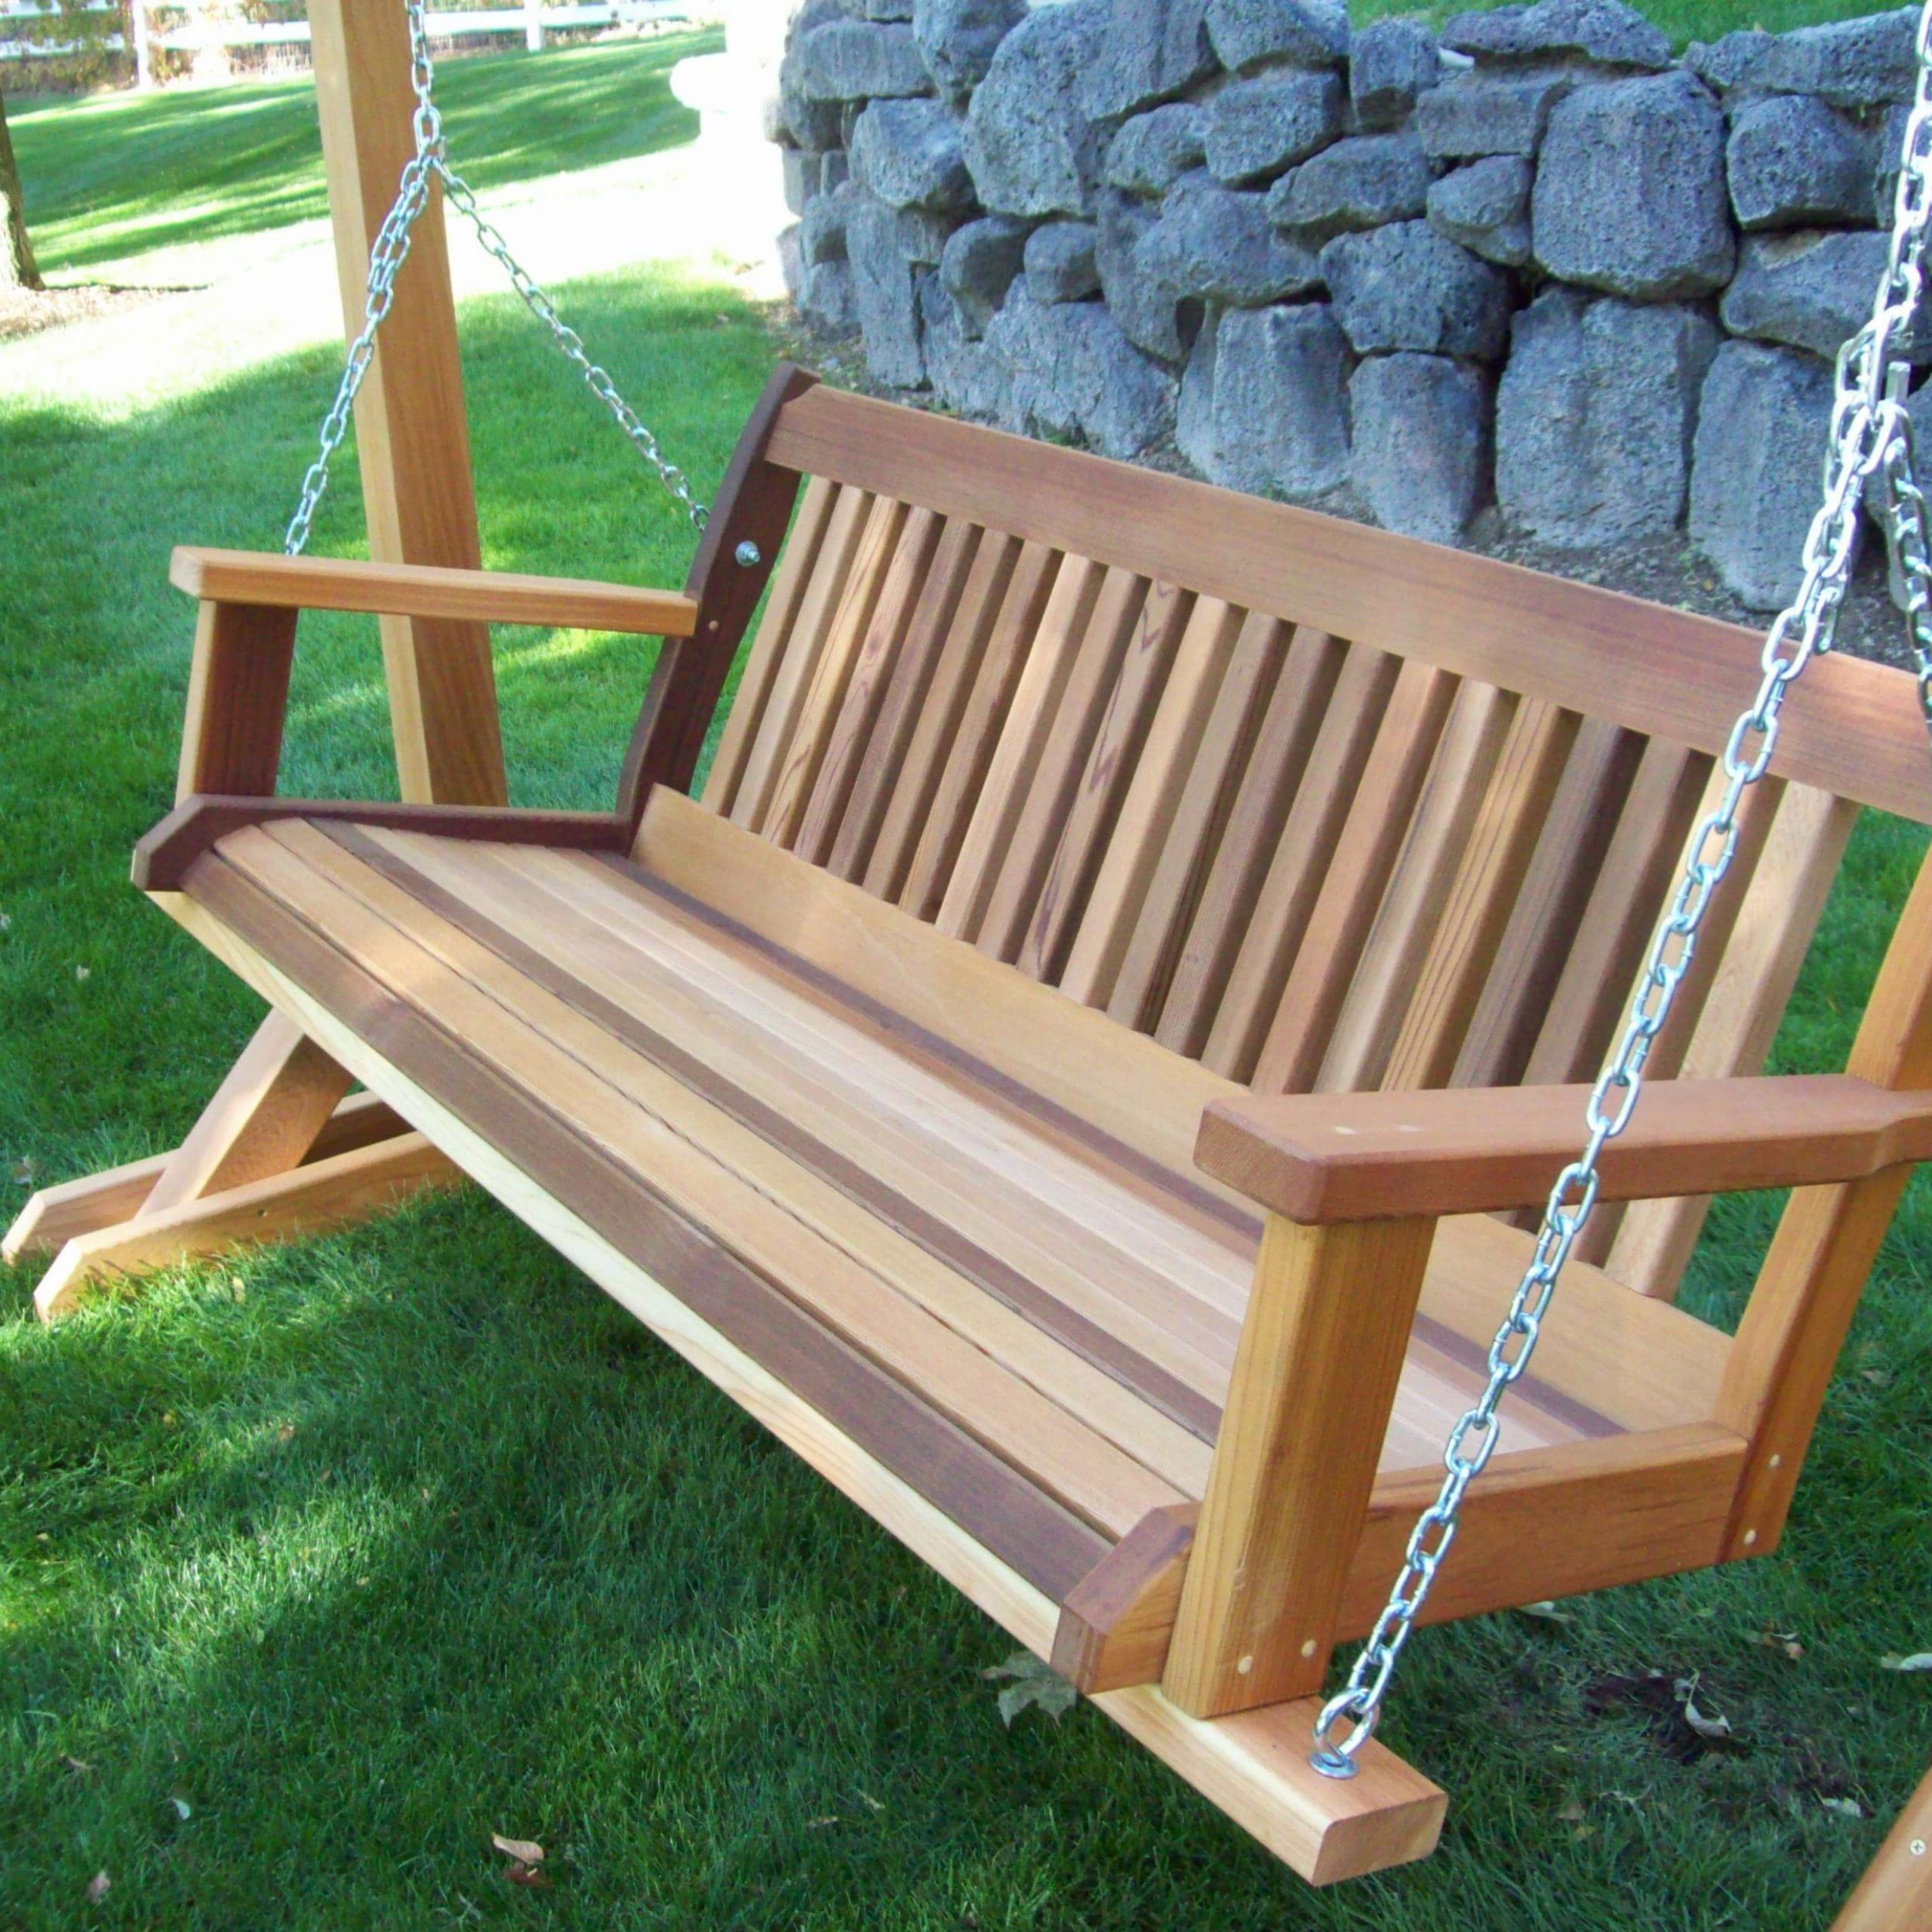 Hardwood Hanging Porch Swings With Stand For Popular Best Porch Swing Reviews & Guide (View 7 of 25)